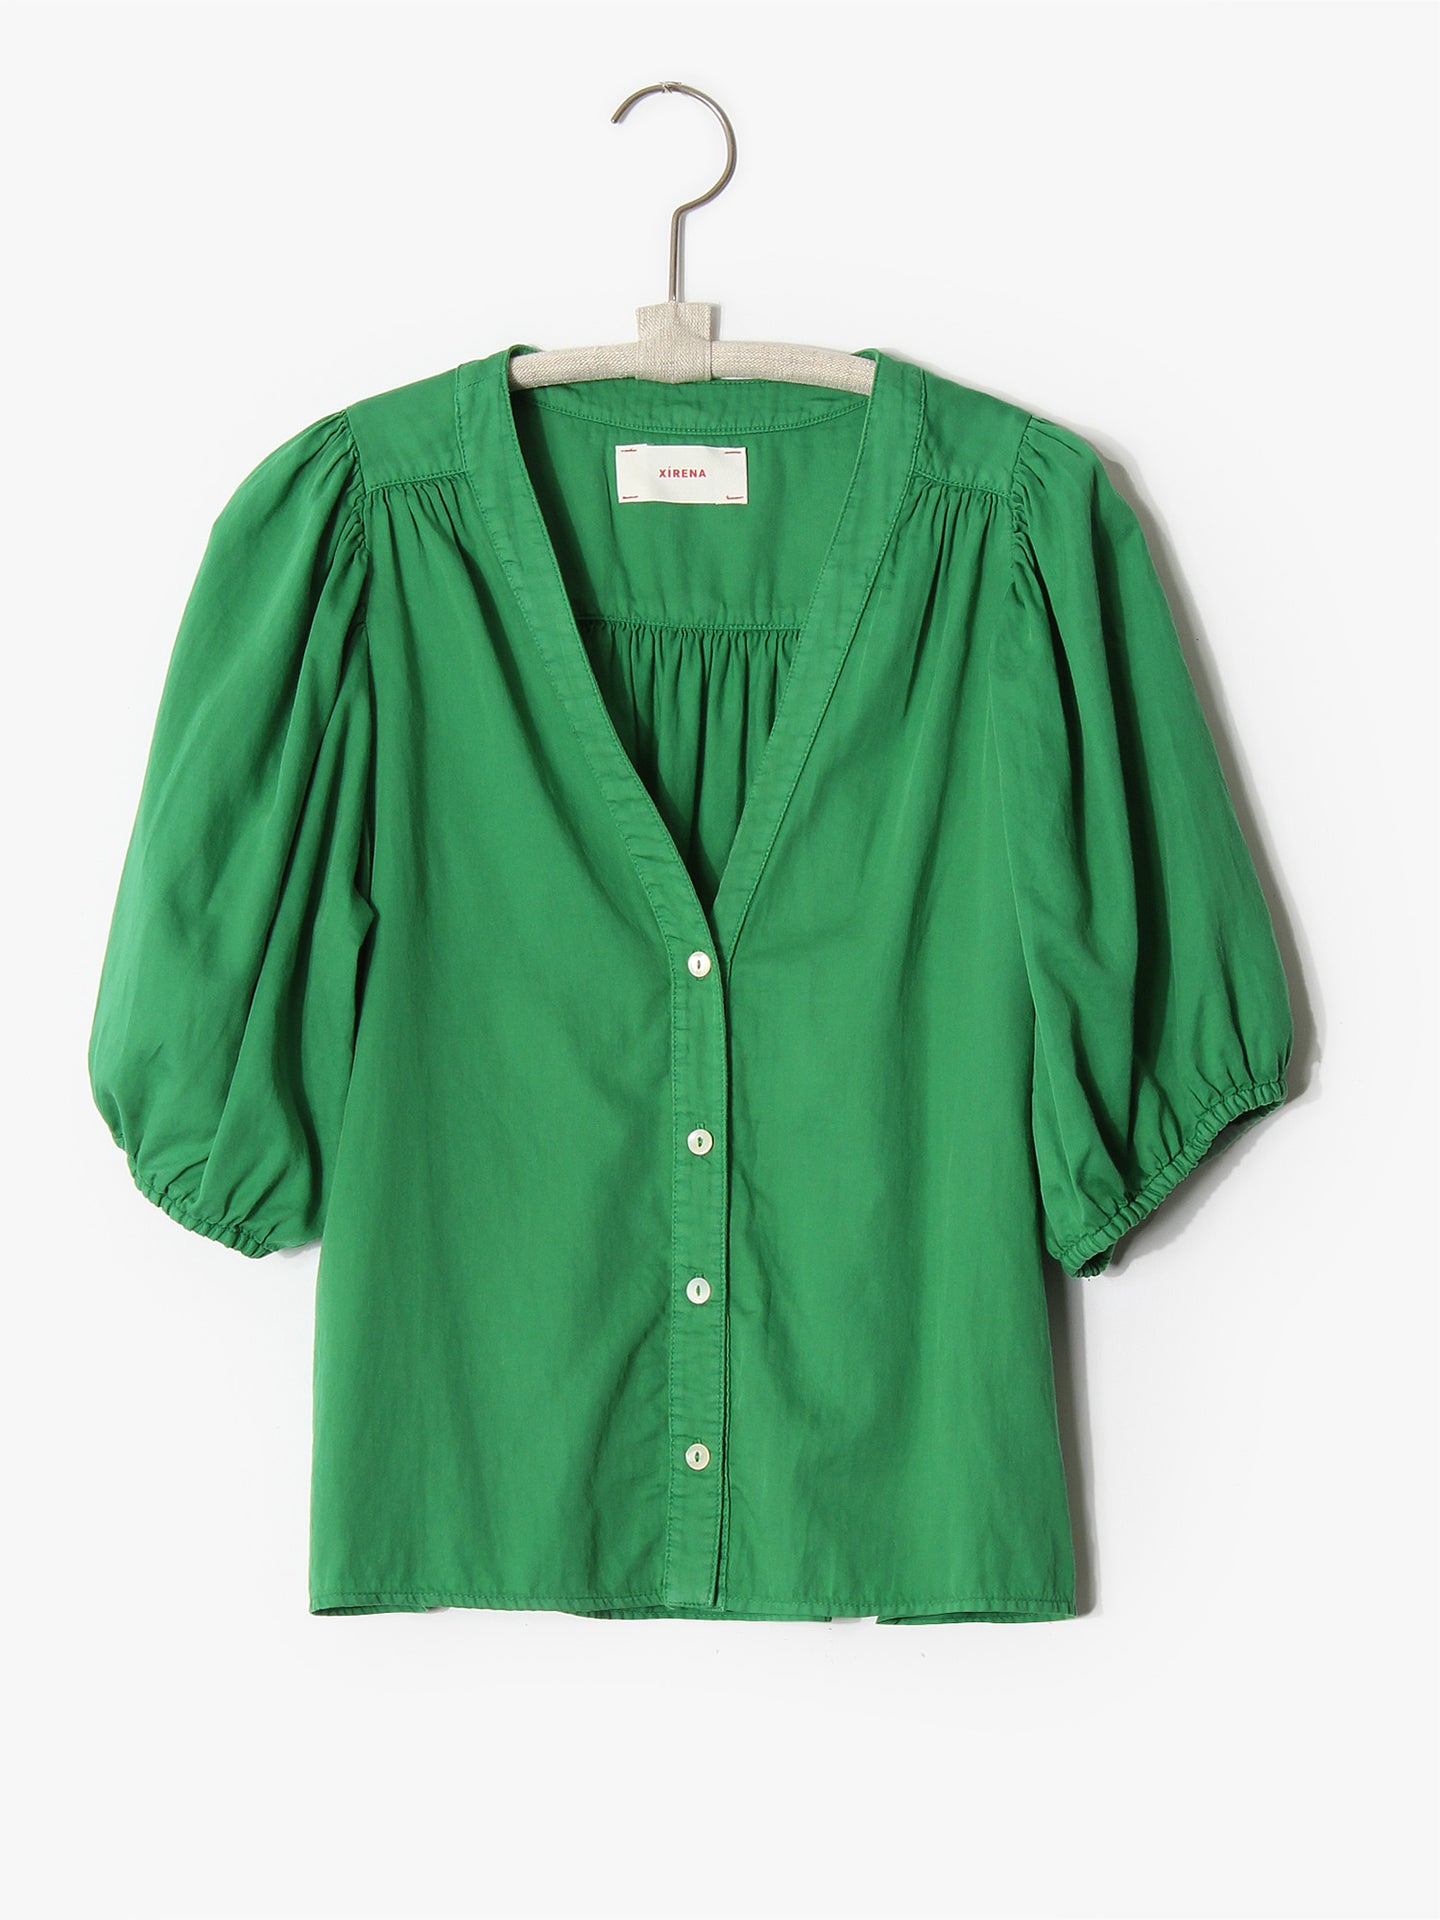 Sydell Shirt Jade Green  PRE ORDER NOW! Available 4/15/2021